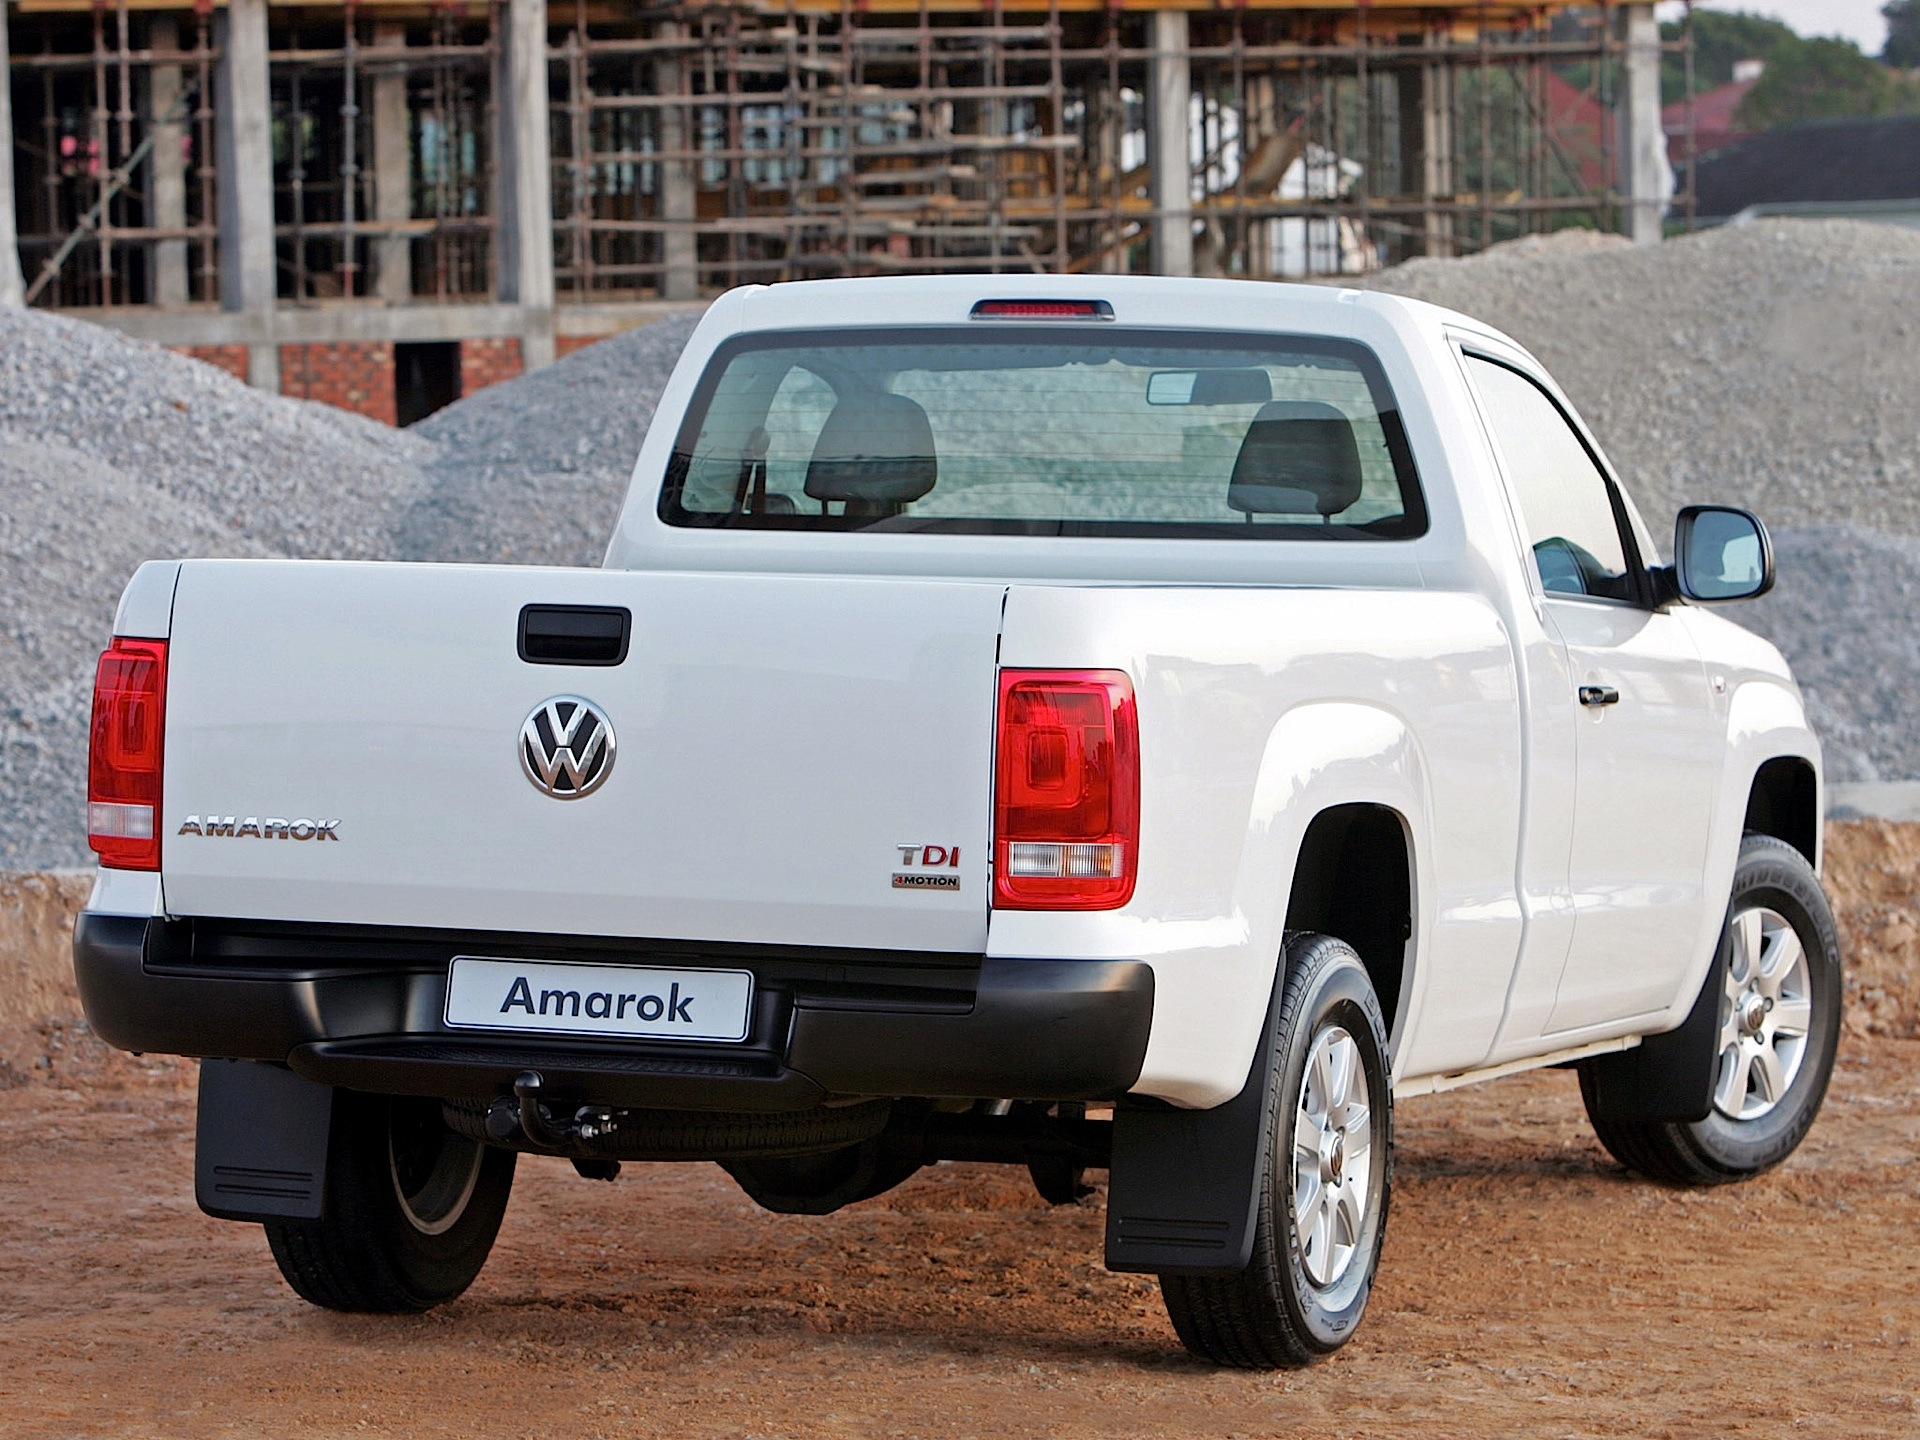 volkswagen amarok single cab specs - 2011, 2012, 2013, 2014, 2015